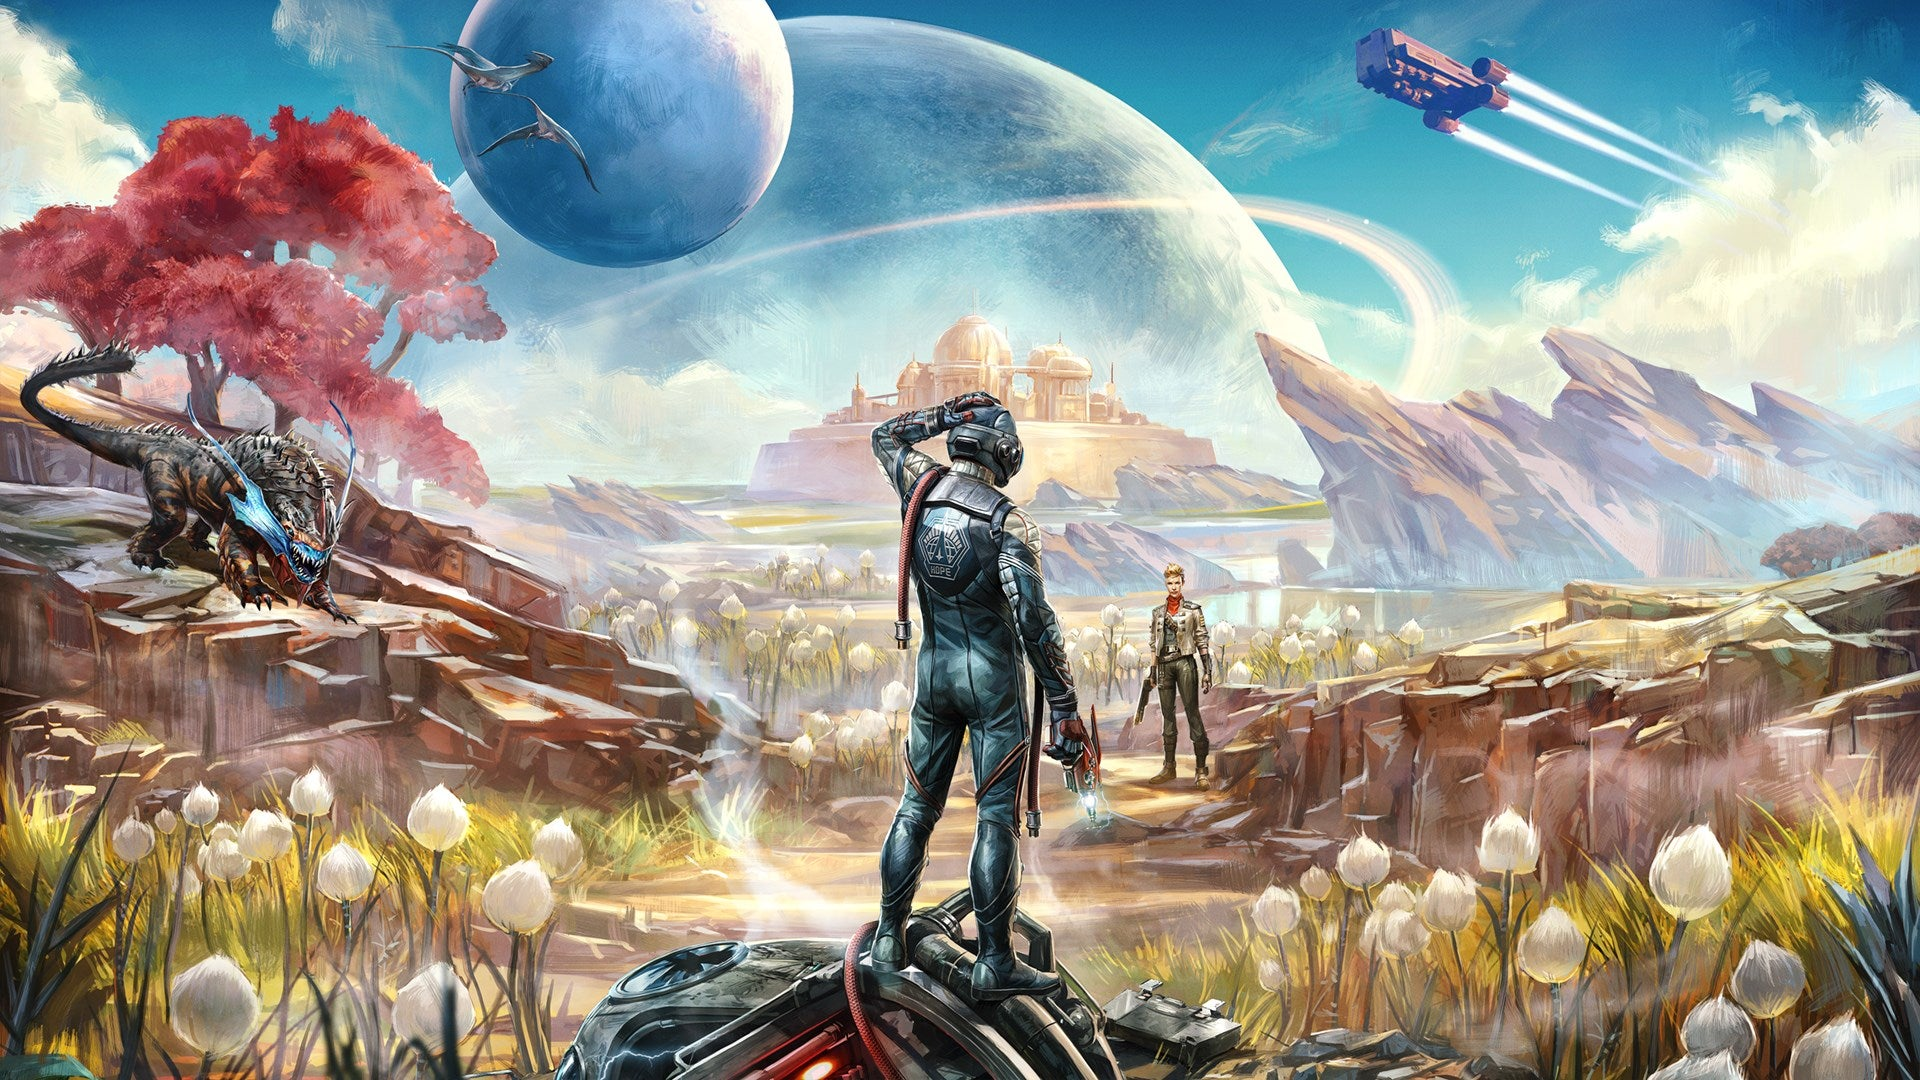 When is The Outer Worlds coming to Nintendo Switch?